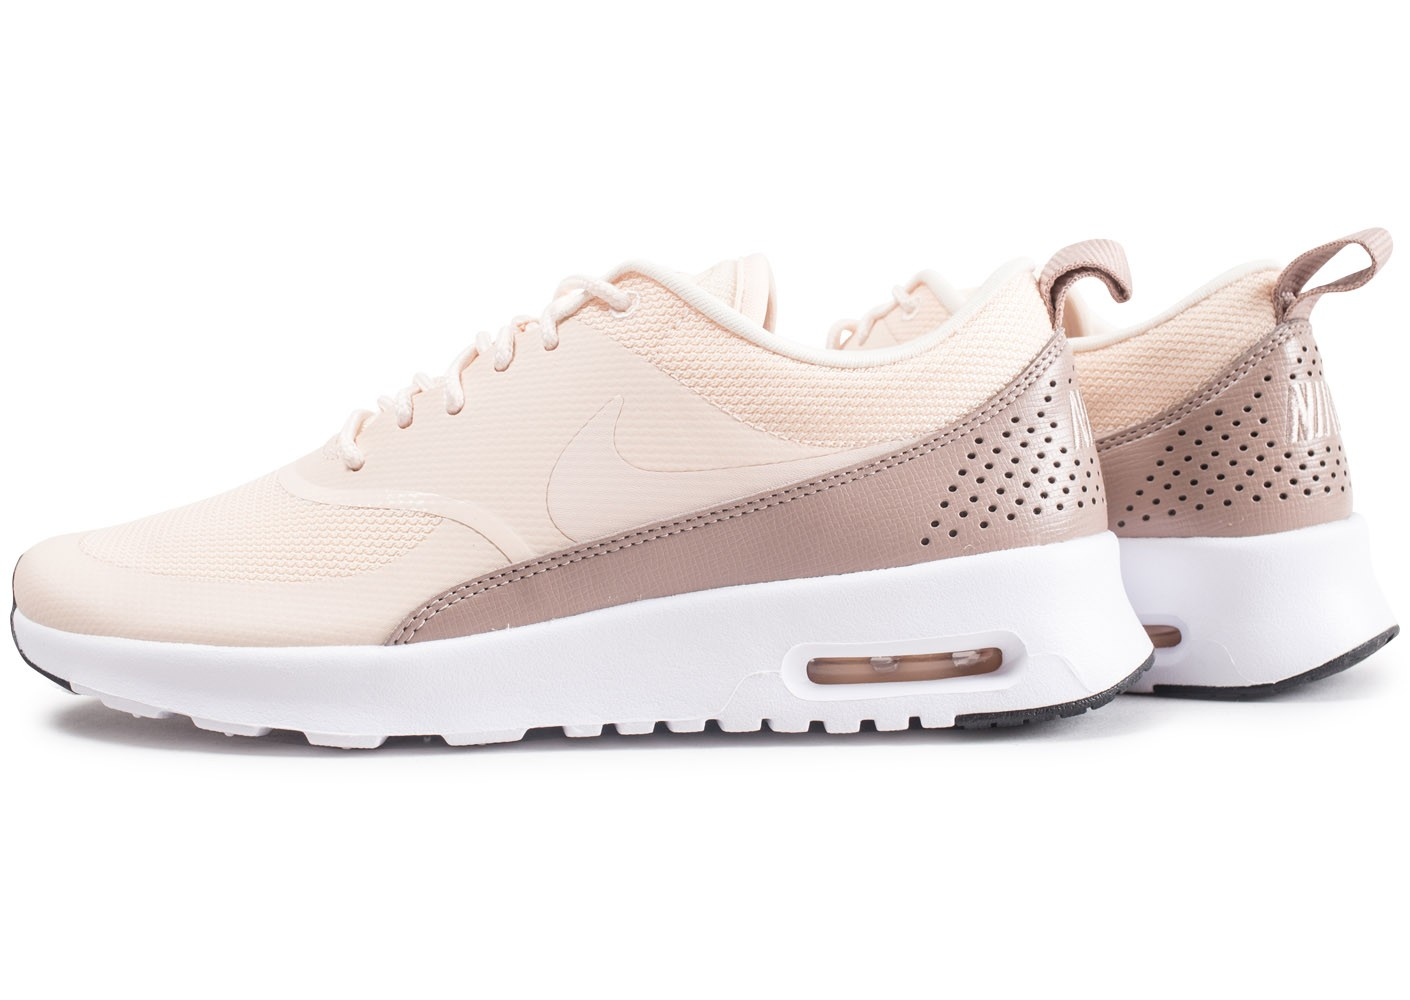 design intemporel 20498 6c0db Nike Air Max Thea beige femme - Chaussures Baskets femme ...